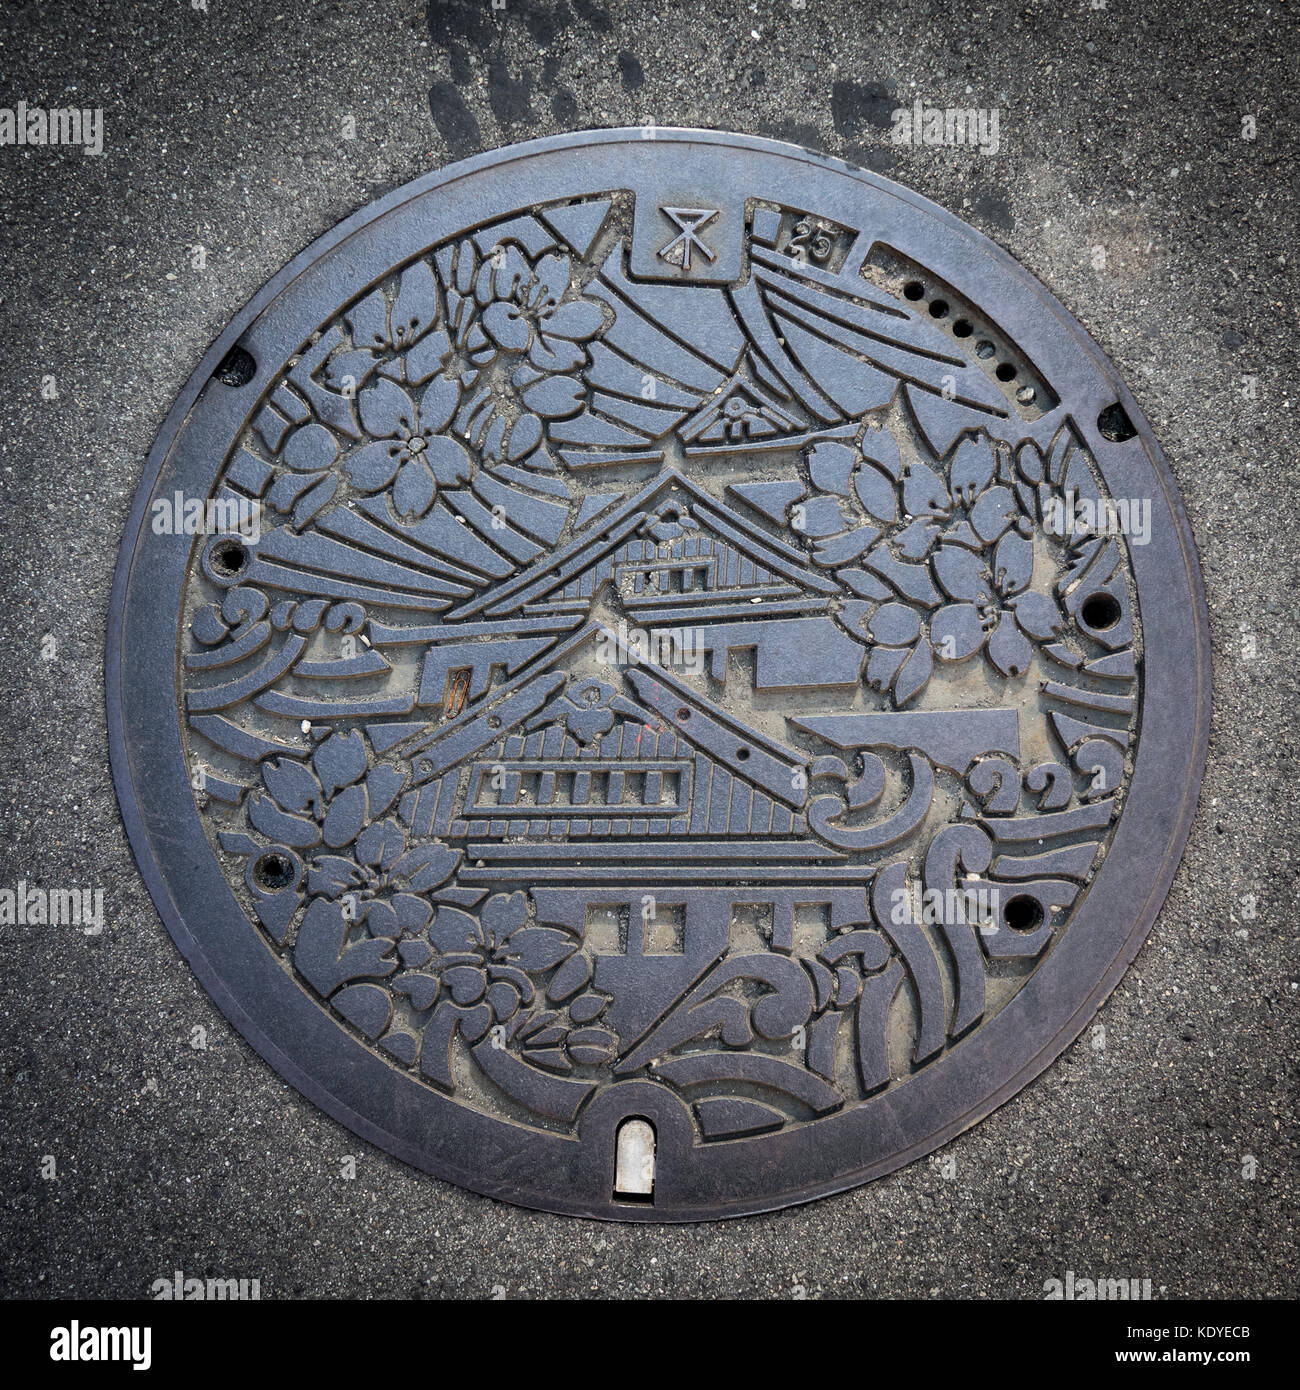 Top view of a manhole cover of Osaka City, Japan - Stock Image